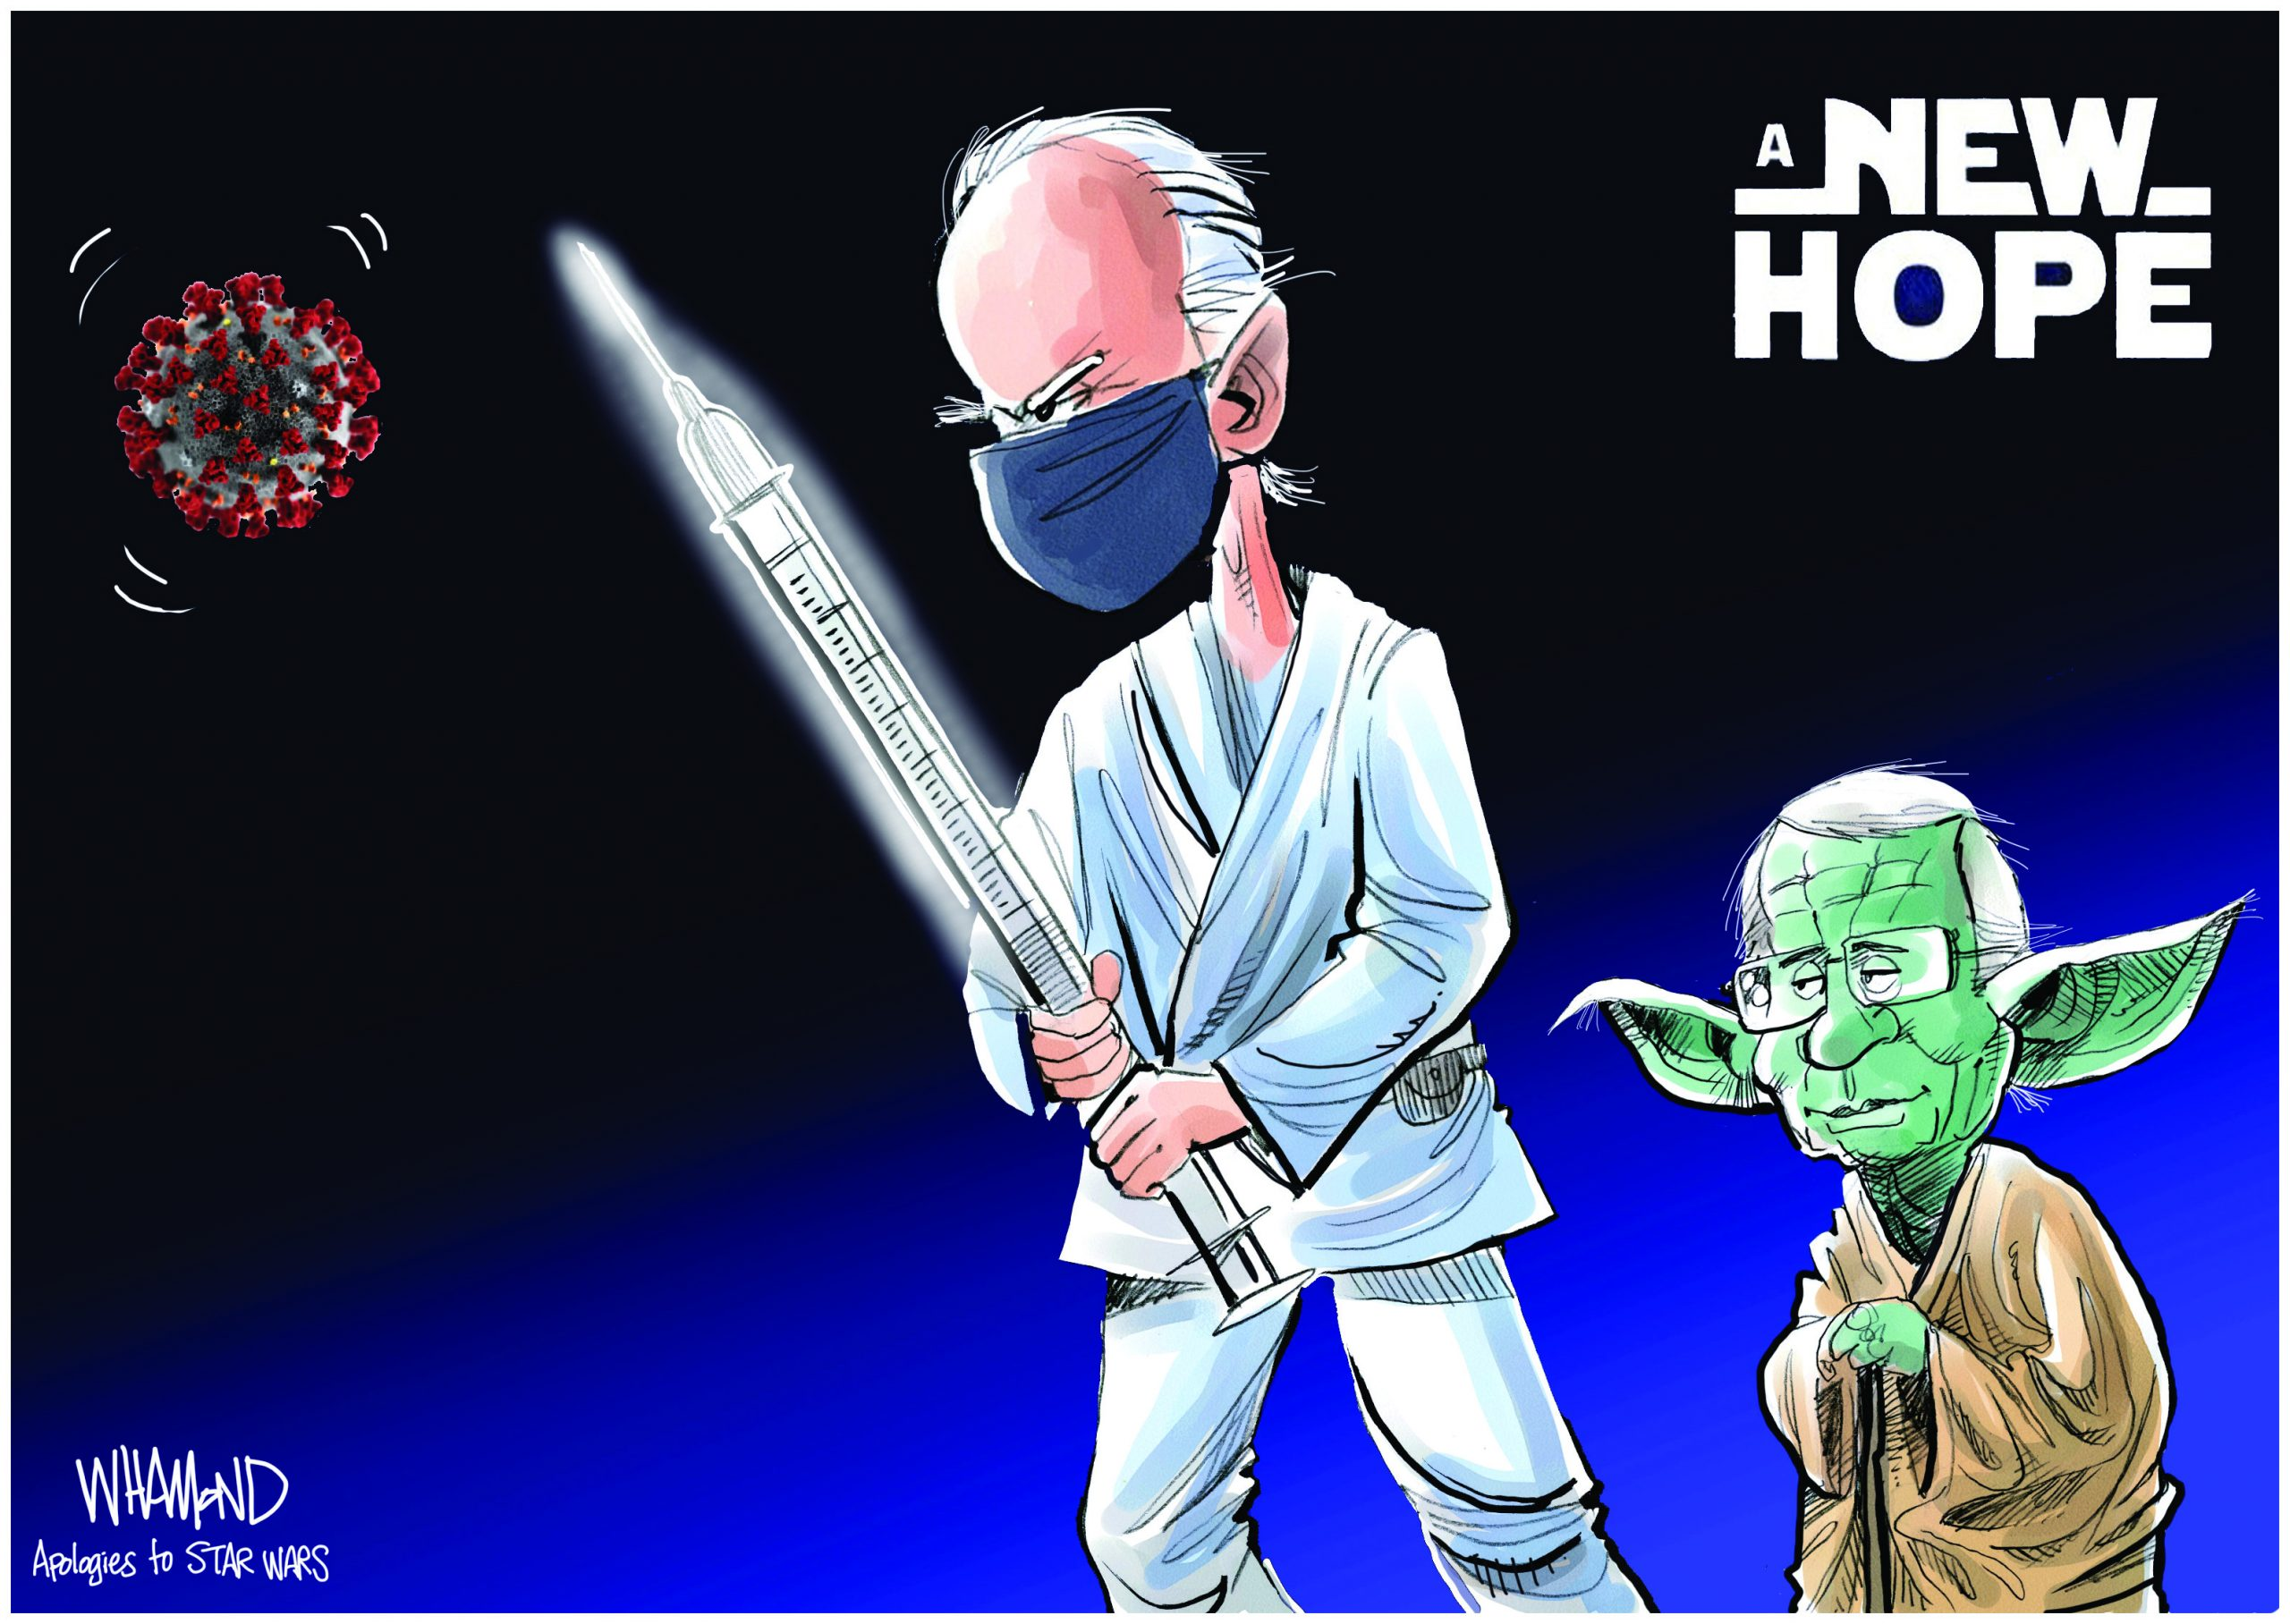 A New Hope. Dave Whamond.